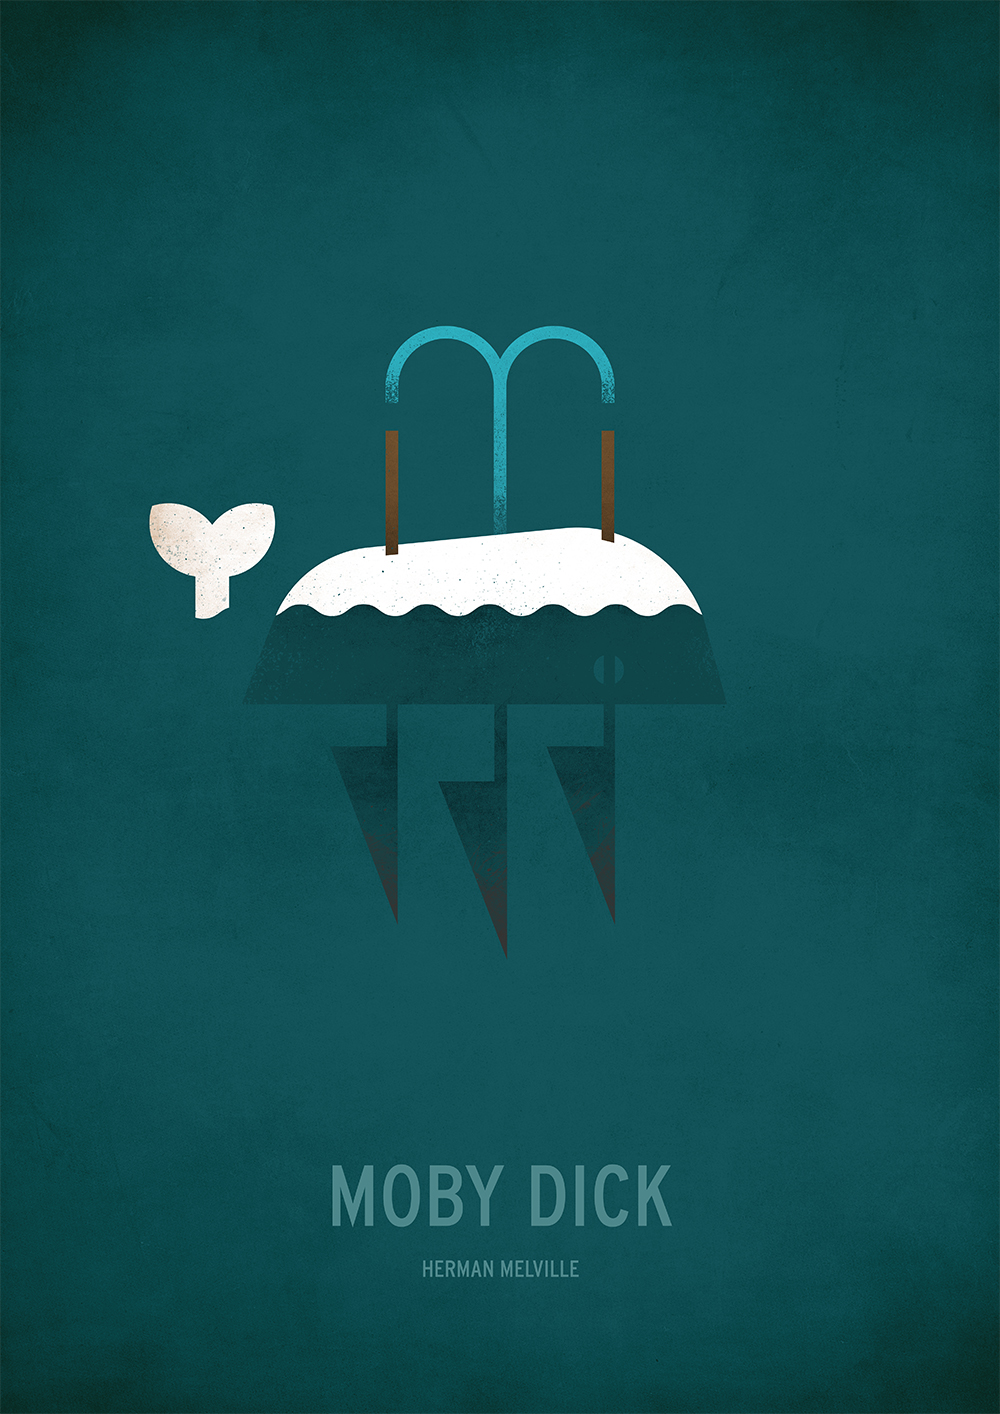 Moby Dick Minimal large